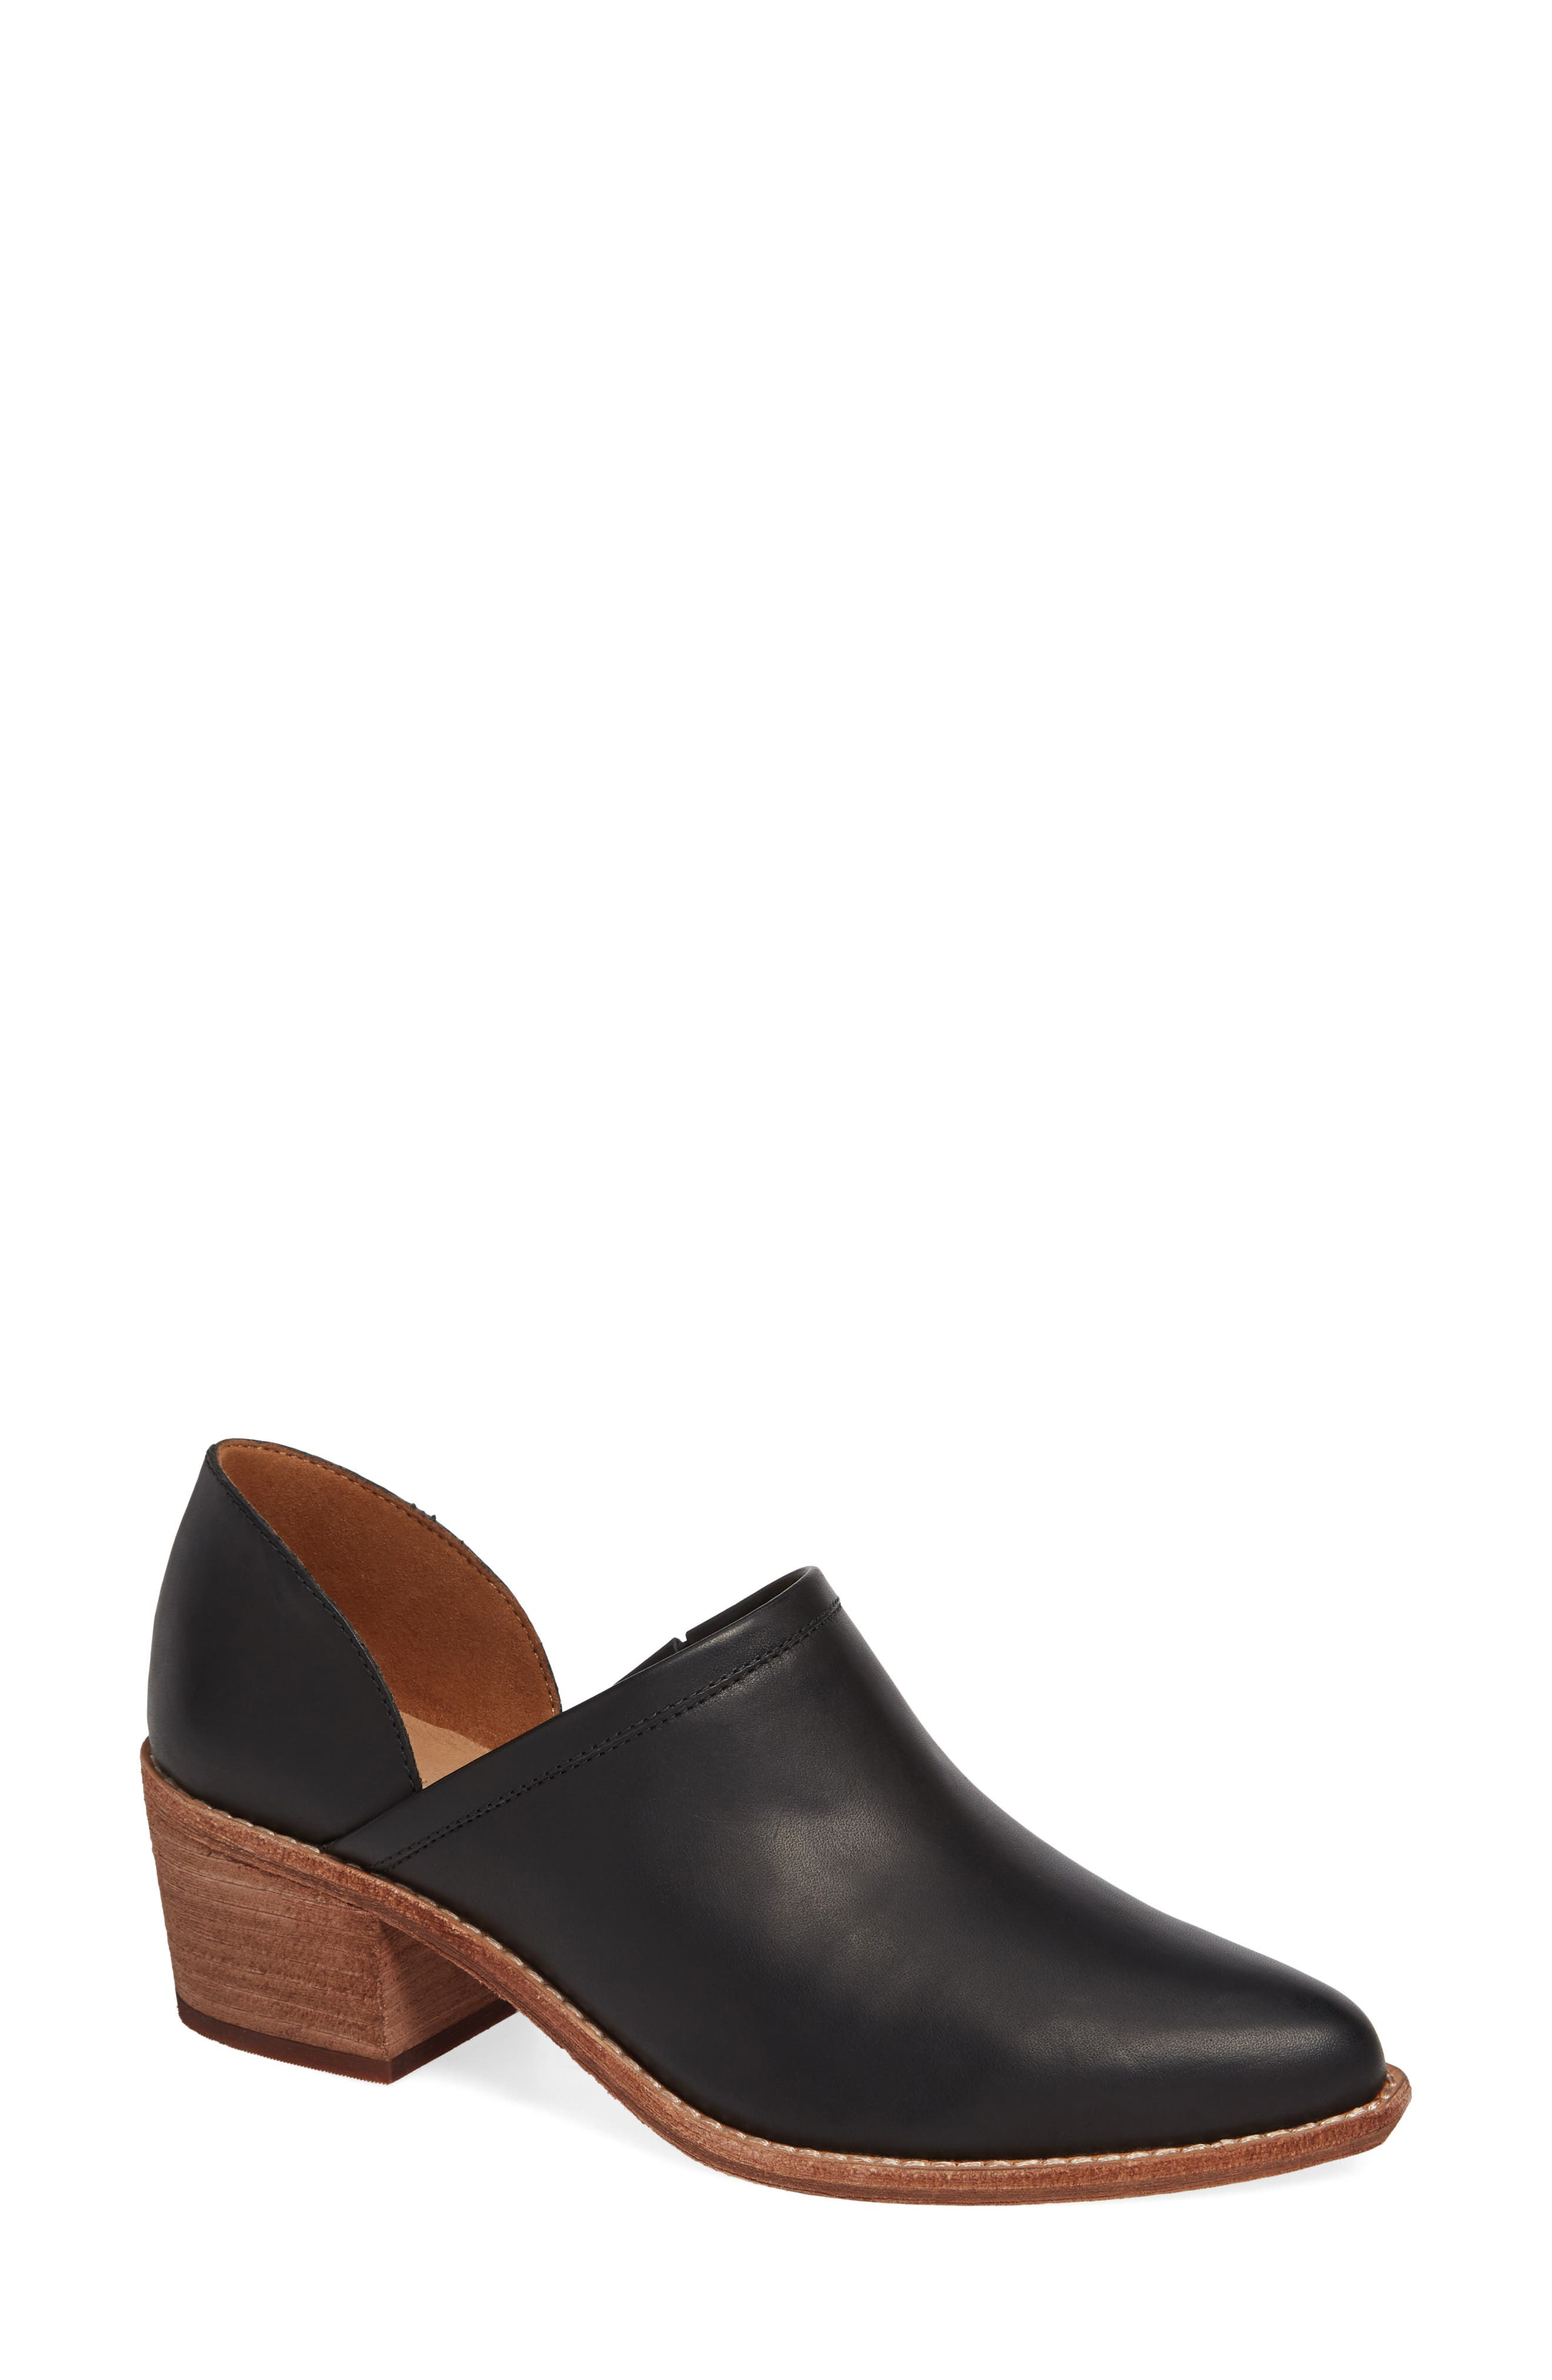 The Brady Block Heel Bootie,                             Main thumbnail 1, color,                             TRUE BLACK LEATHER